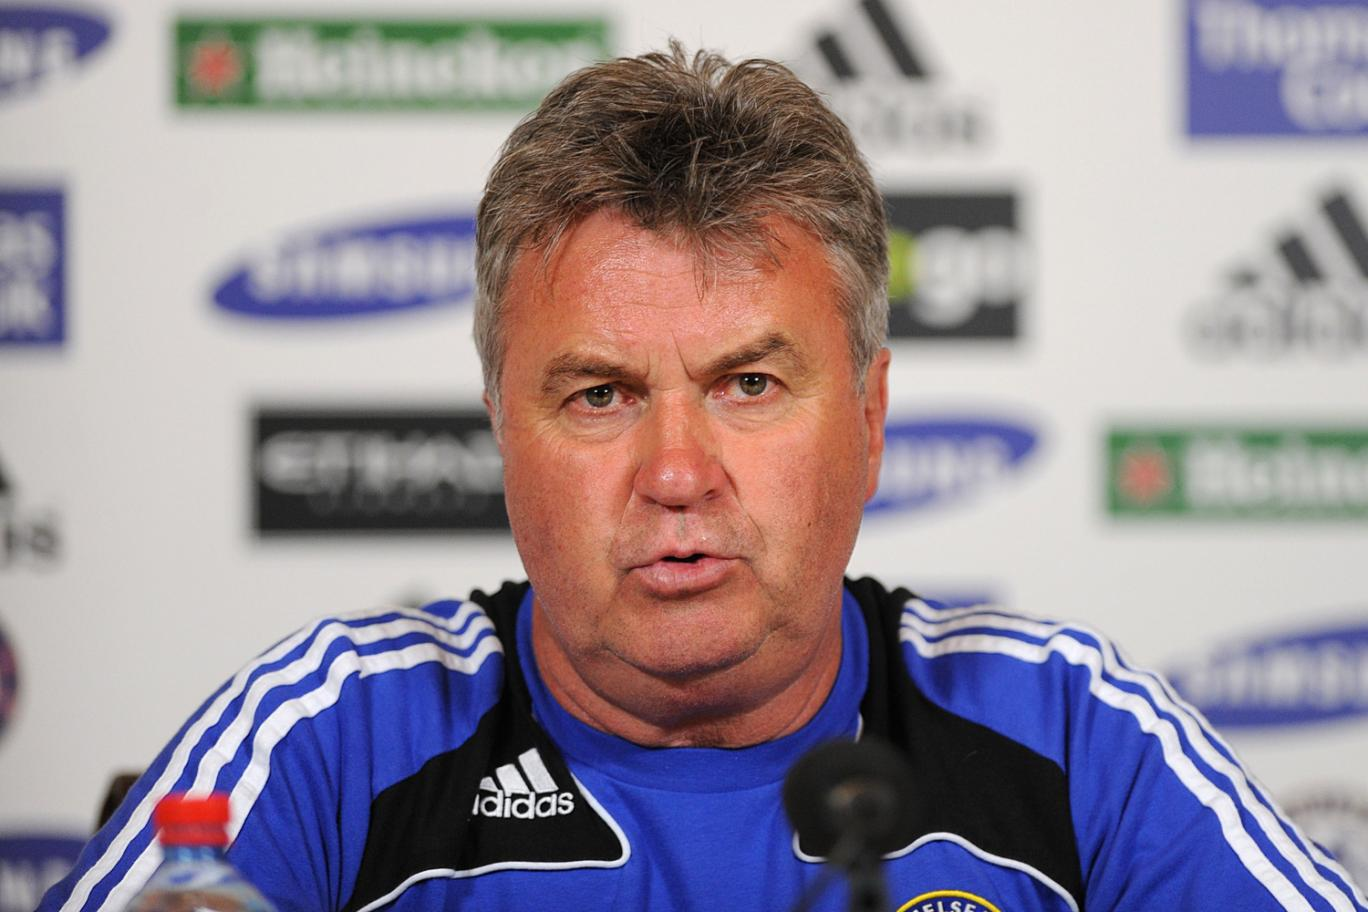 Guus Hiddink will pick team on performance not reputation